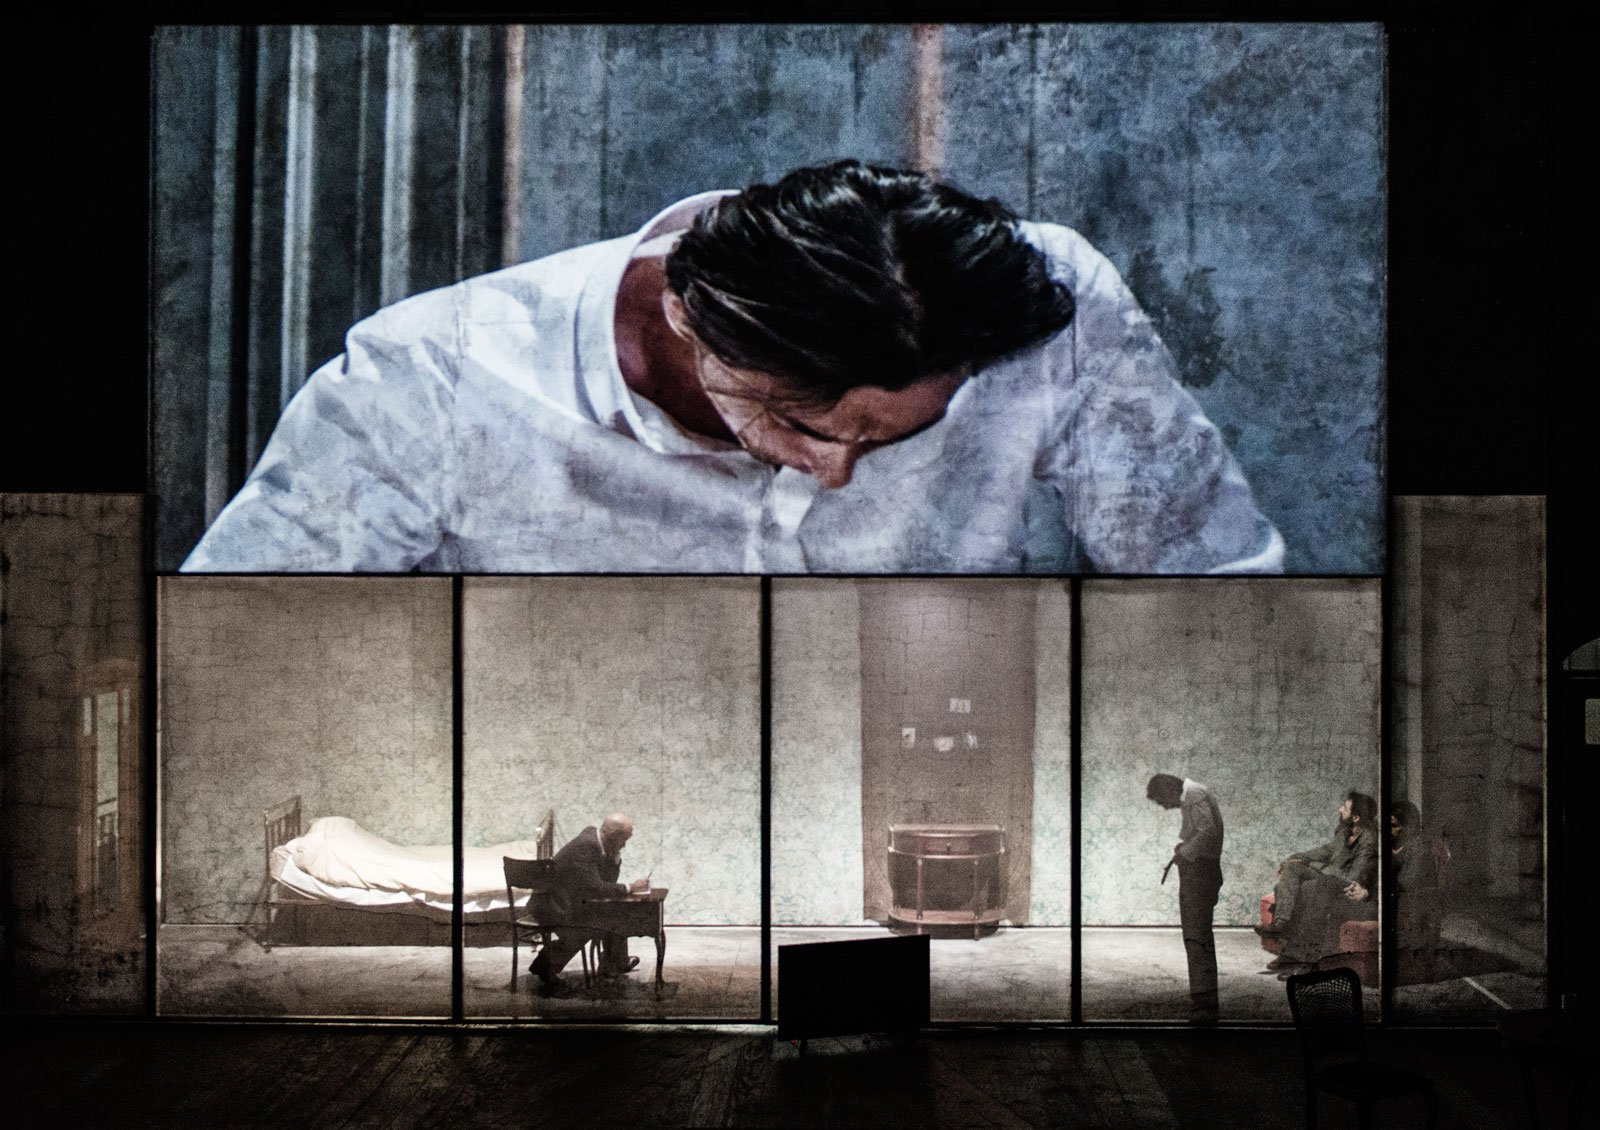 Cancelled Polish adaptation of Kafka play in New York raises questions over censorship from Warsaw